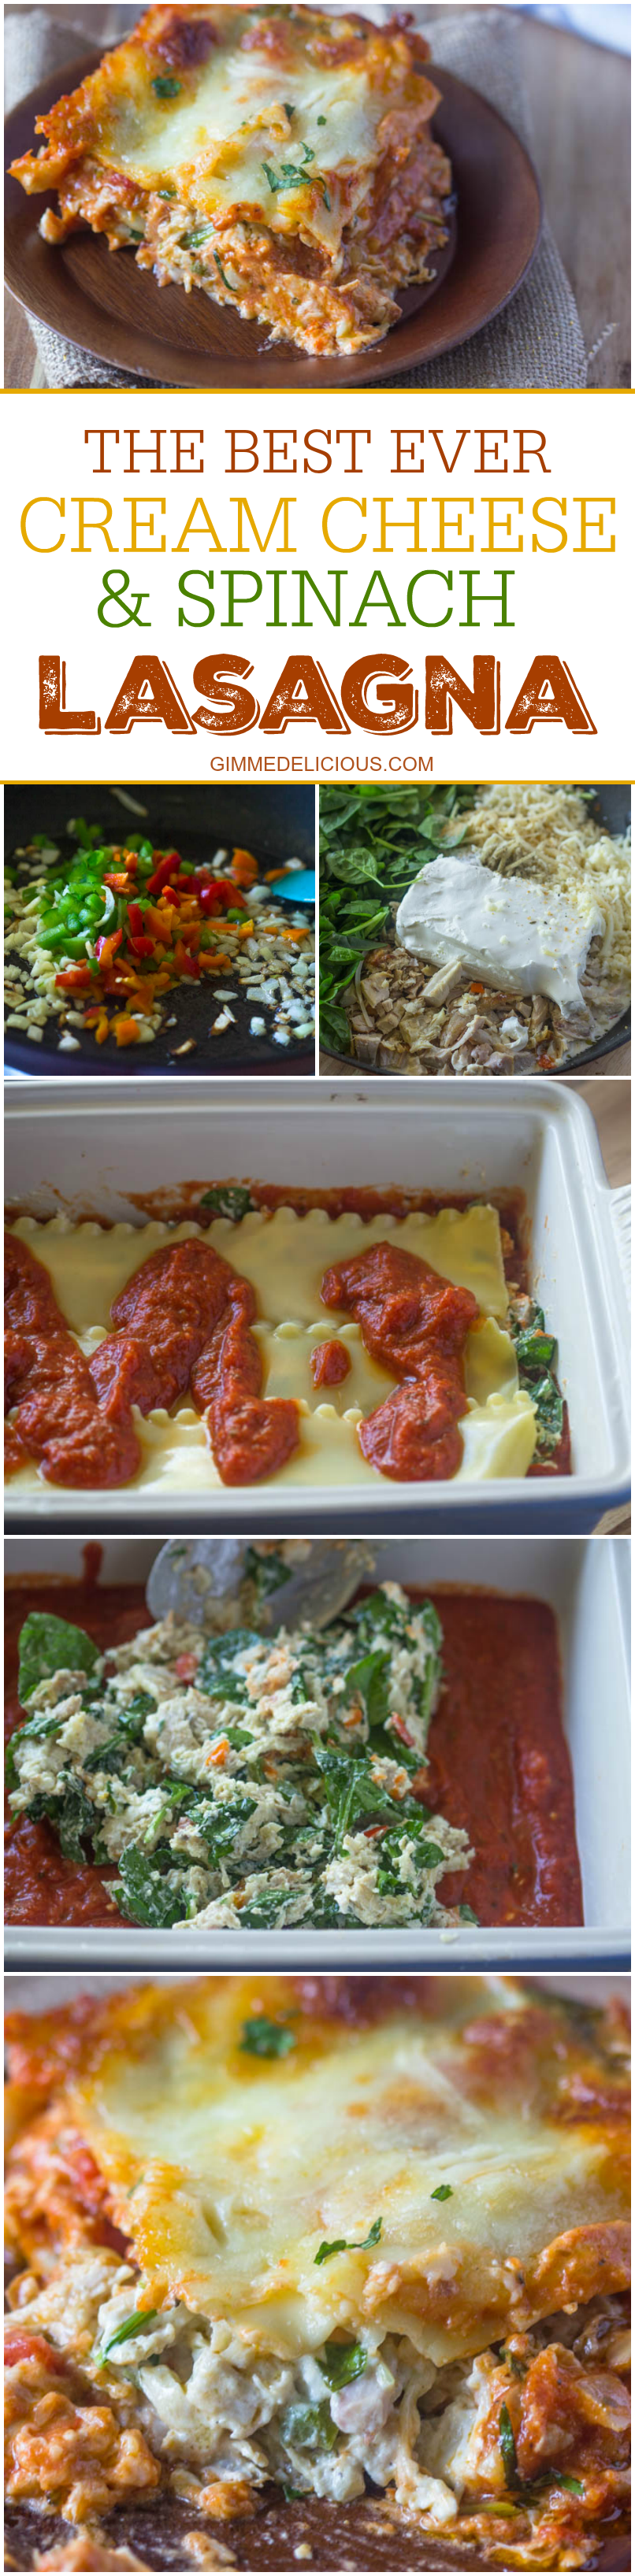 Creamy Chicken, Spinach & Cream Cheese Lasagna #gimmedelicious #leftover